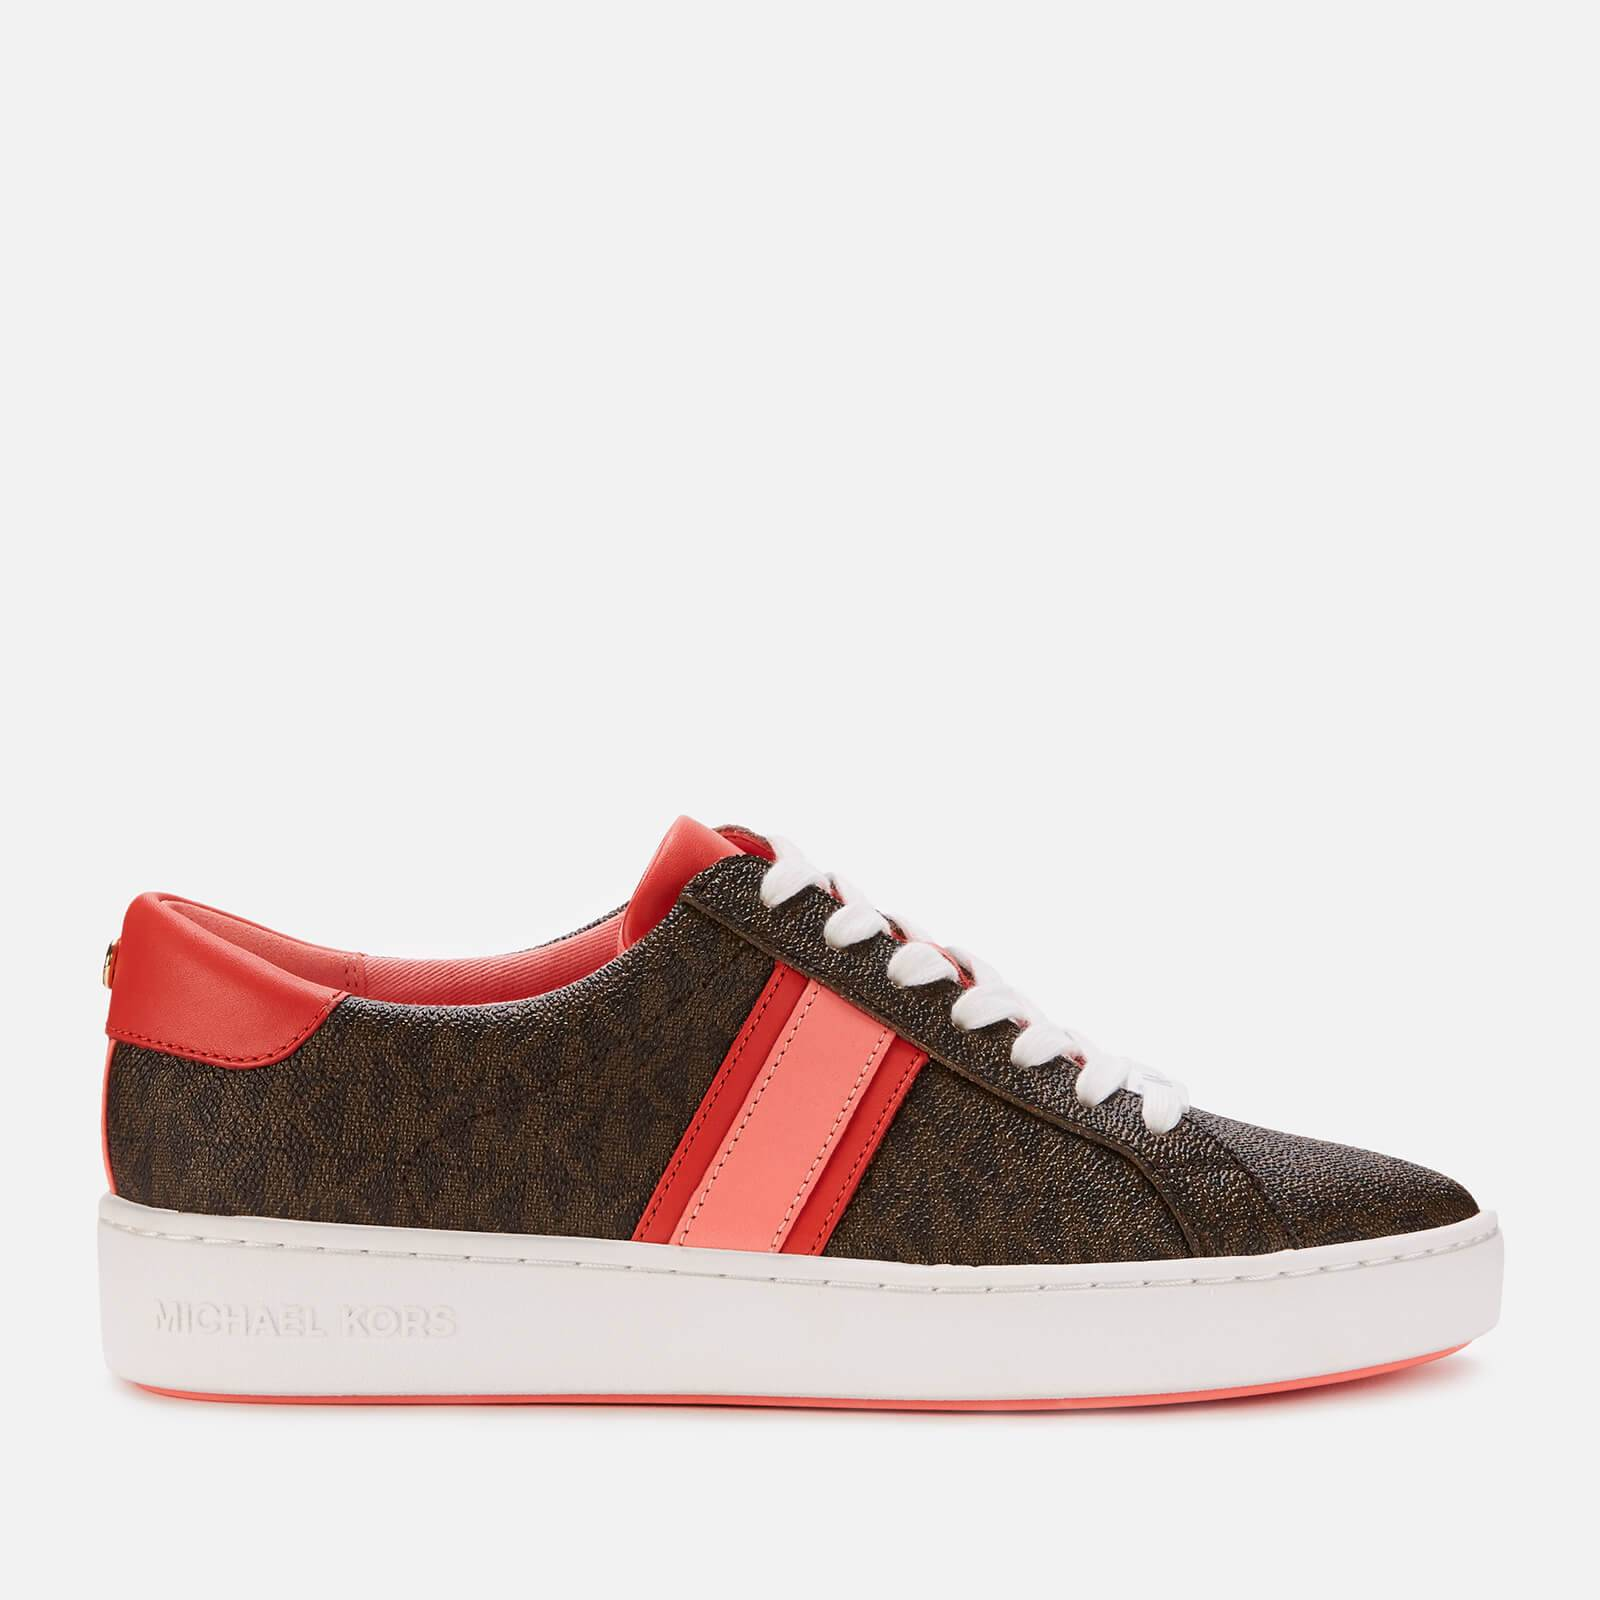 MICHAEL MICHAEL KORS Women's Irving Leather Cupsole Trainers - Brown - UK 7/US 10 - Brown